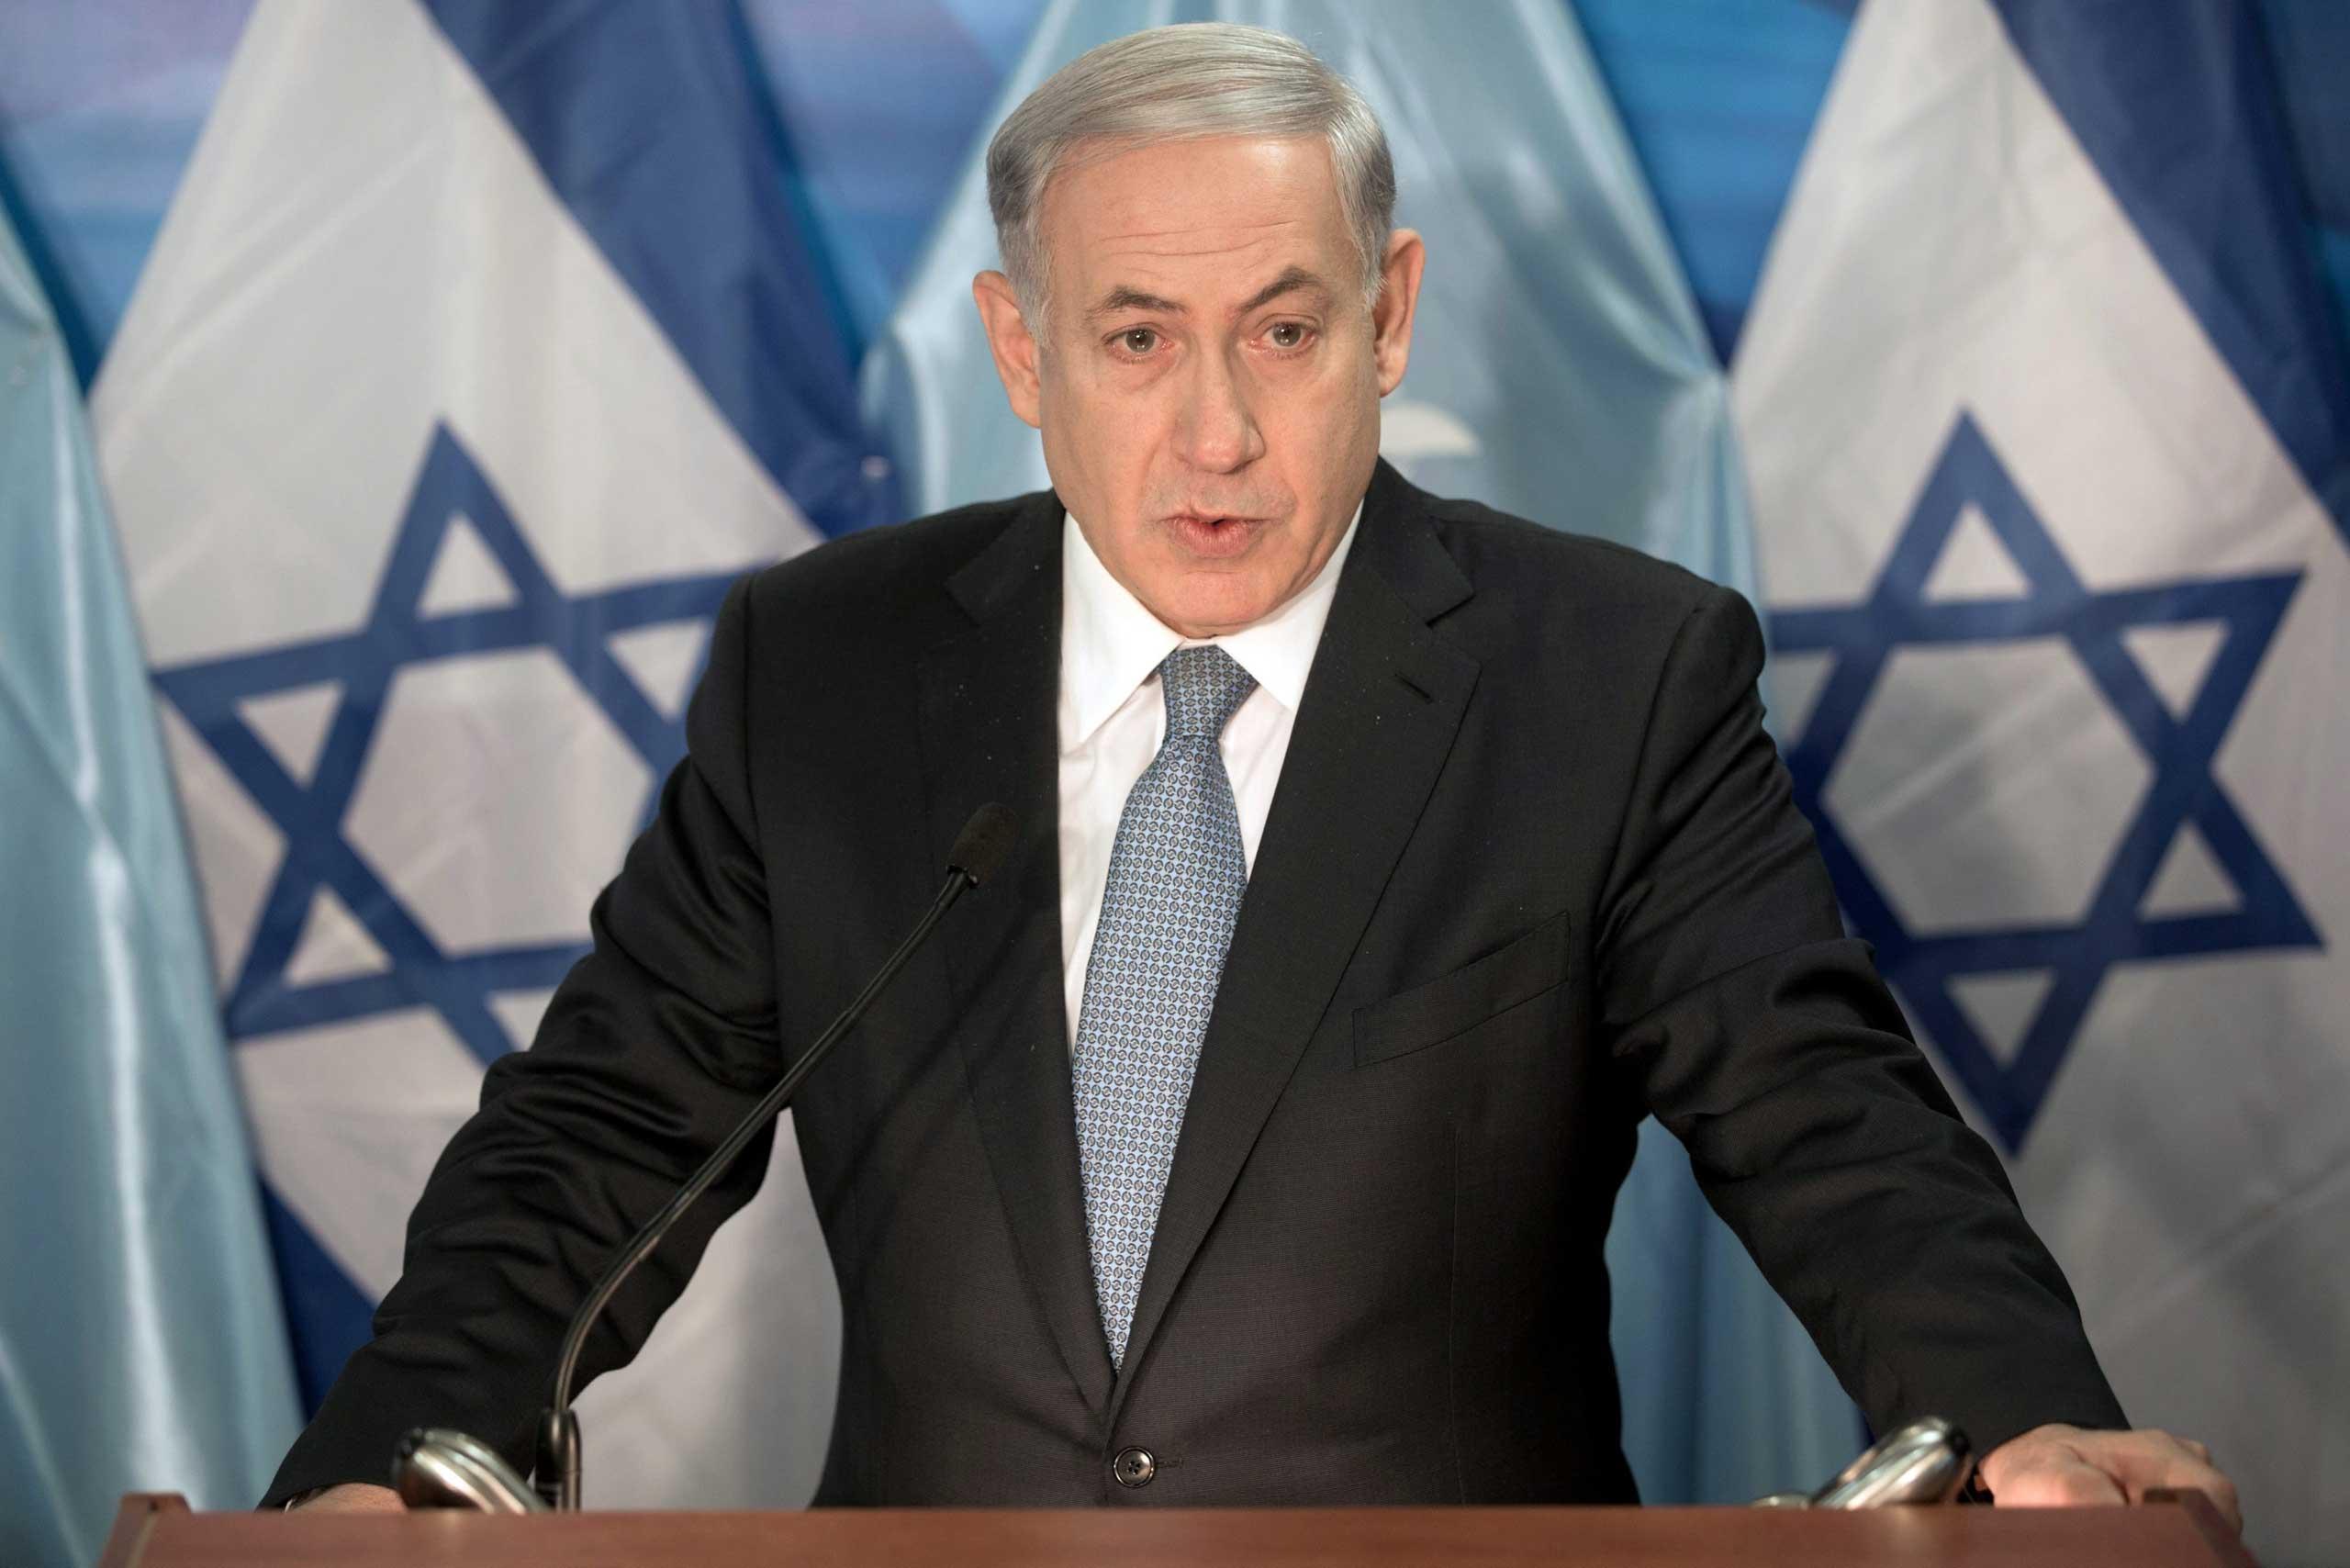 Israeli Prime Minister Benjamin Netanyahu speaks during a press conference in Jerusalem, Oct. 13, 2014.